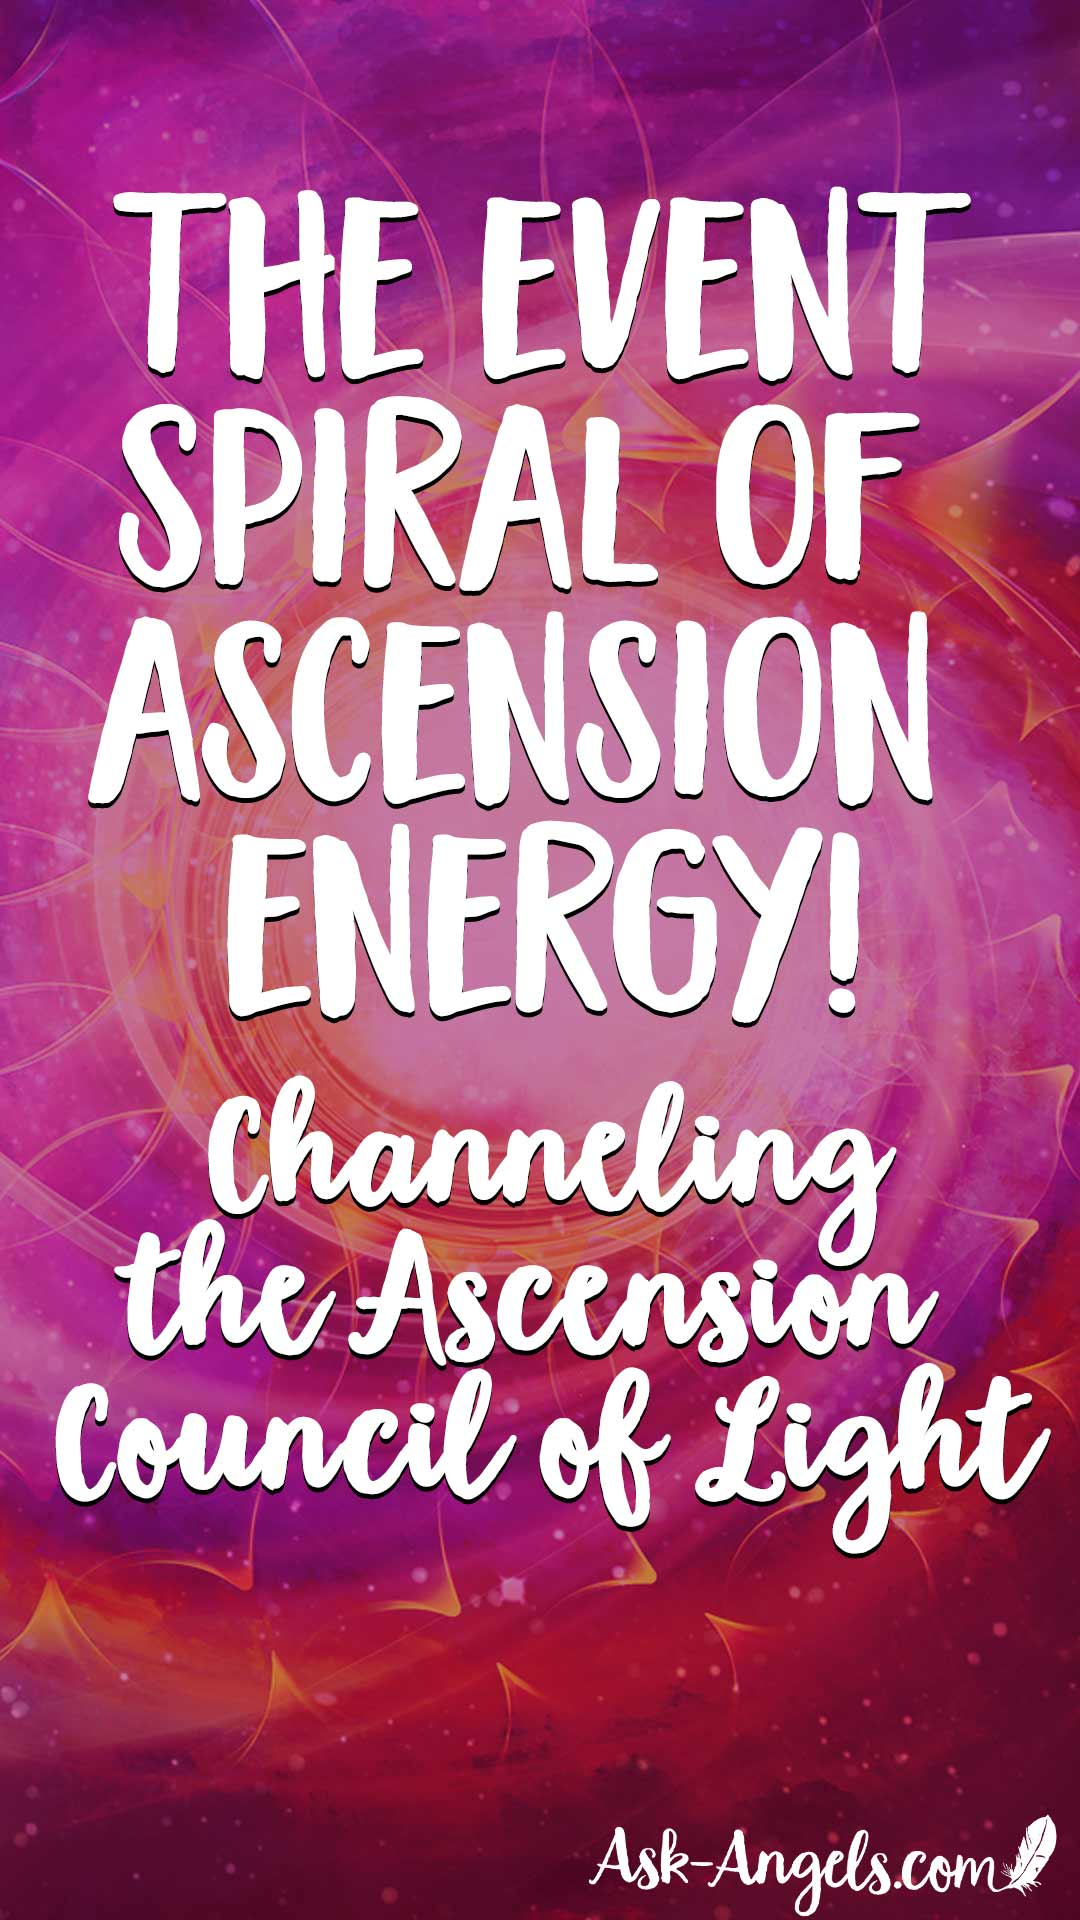 The Event Spiral of Ascension Energy, channeling with the ascension council of light